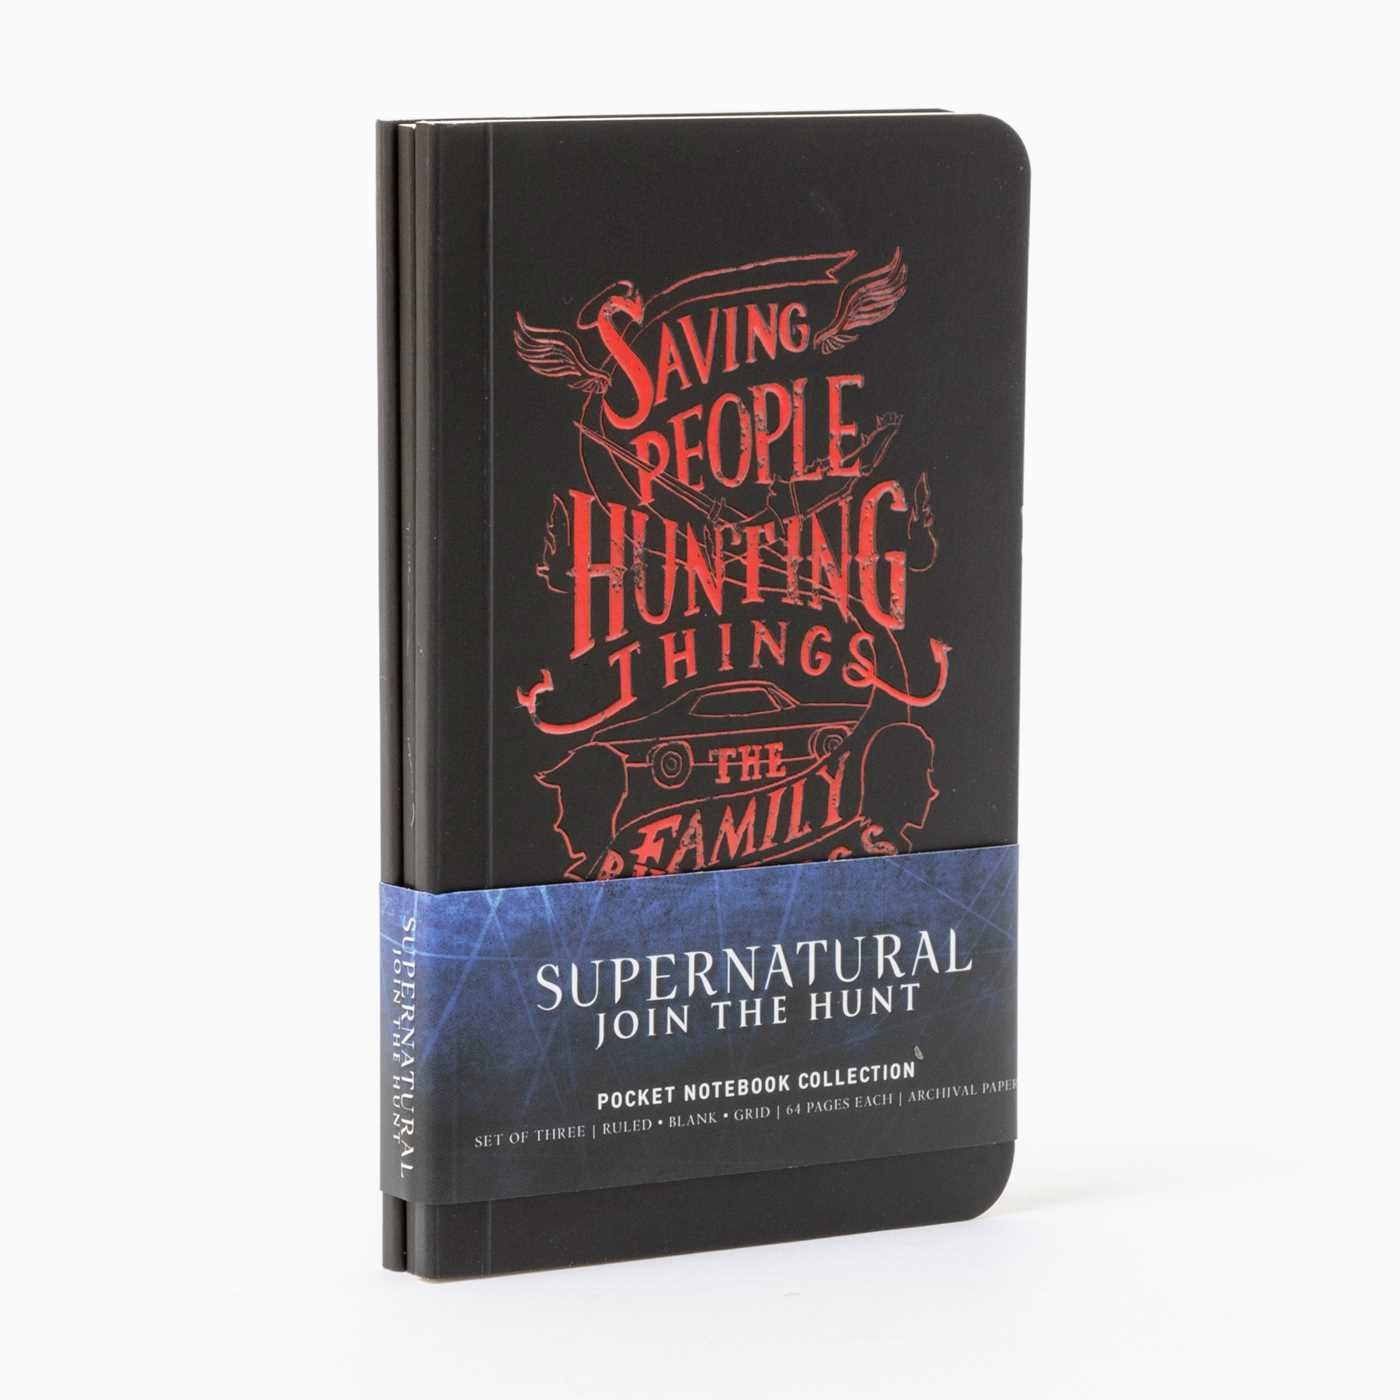 Supernatural pocket notebook collection set of 3 9781683835264.in04